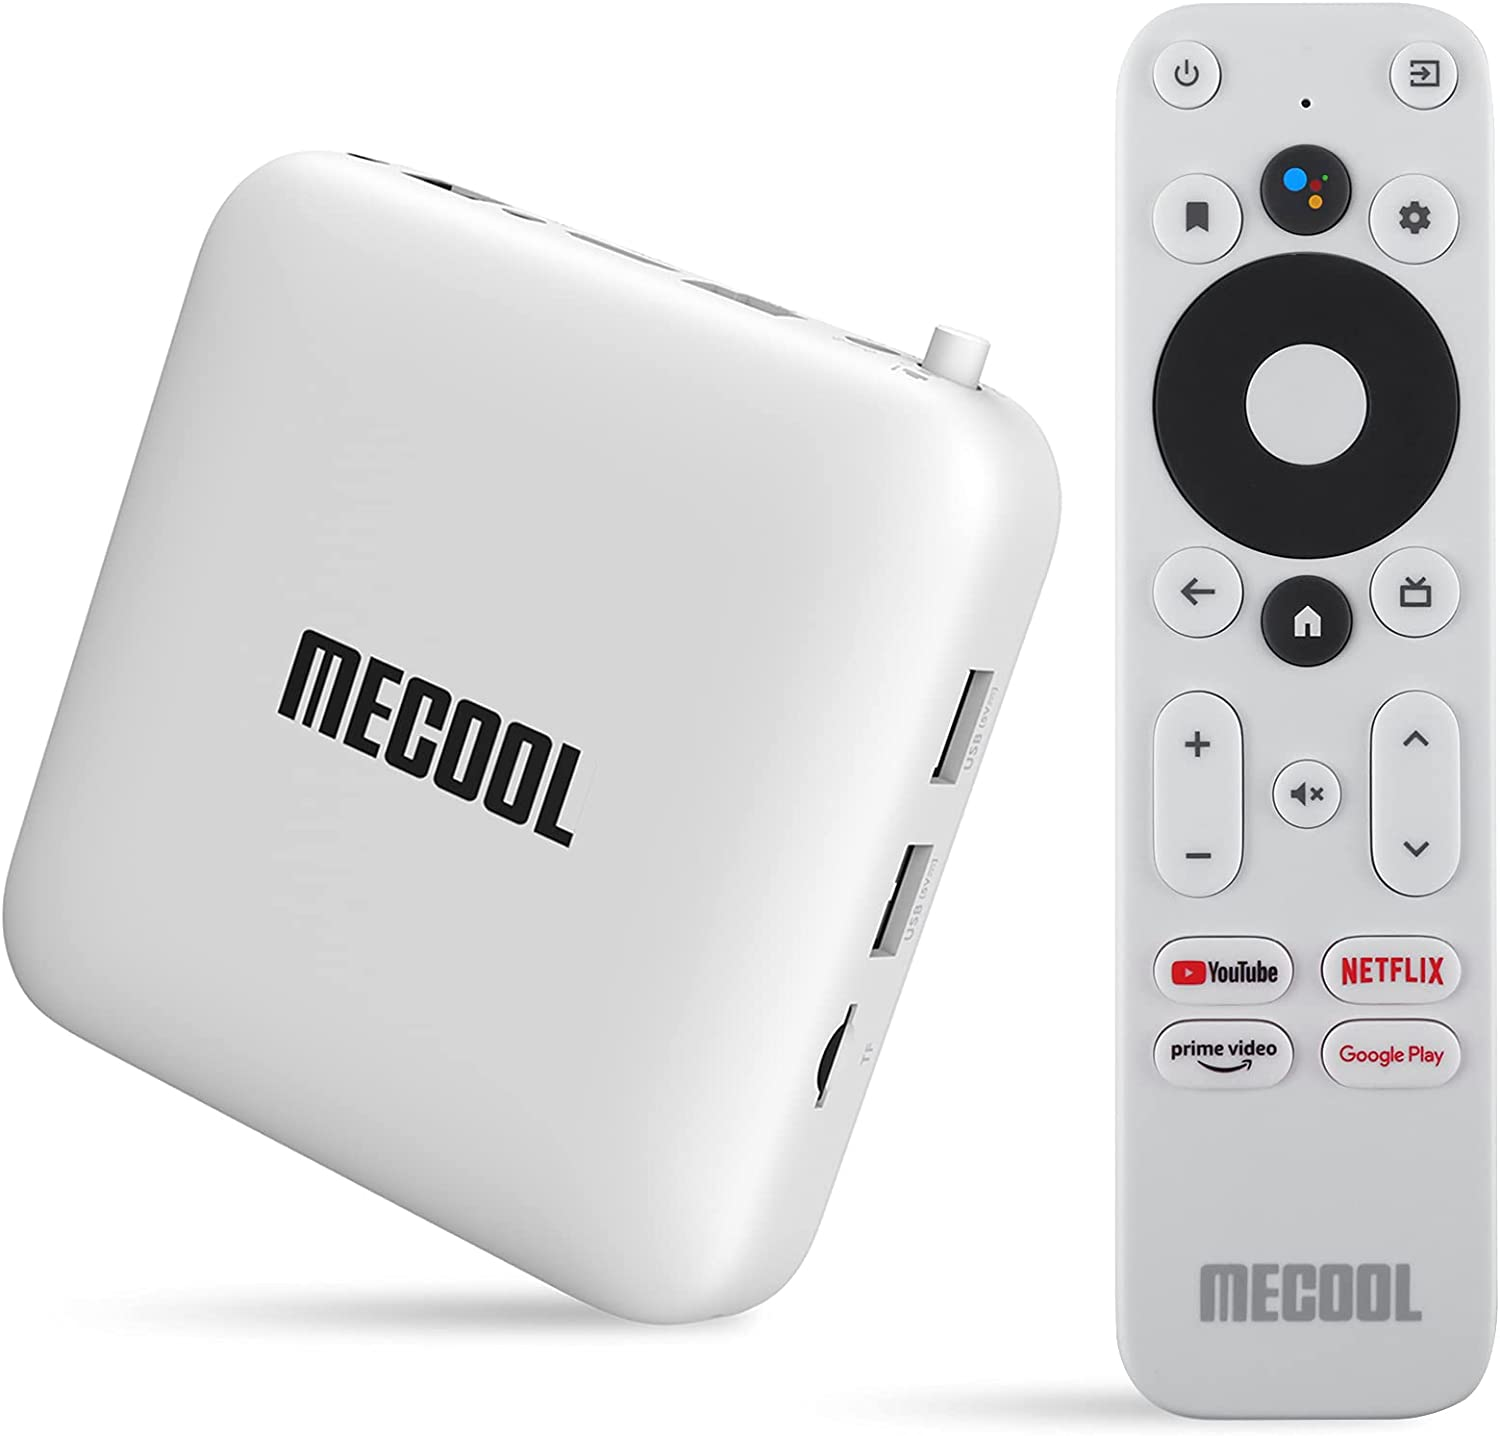 MECOOL KM2 Android TV Box 10.0 Android TV con Netflix Certificado Amlogic S905X2-B TV Box Android 4K Streaming Media Player Certificado Google 2G DDR4 8G EMMc BT 4.2 Smart Box TV Android Dolby Audio